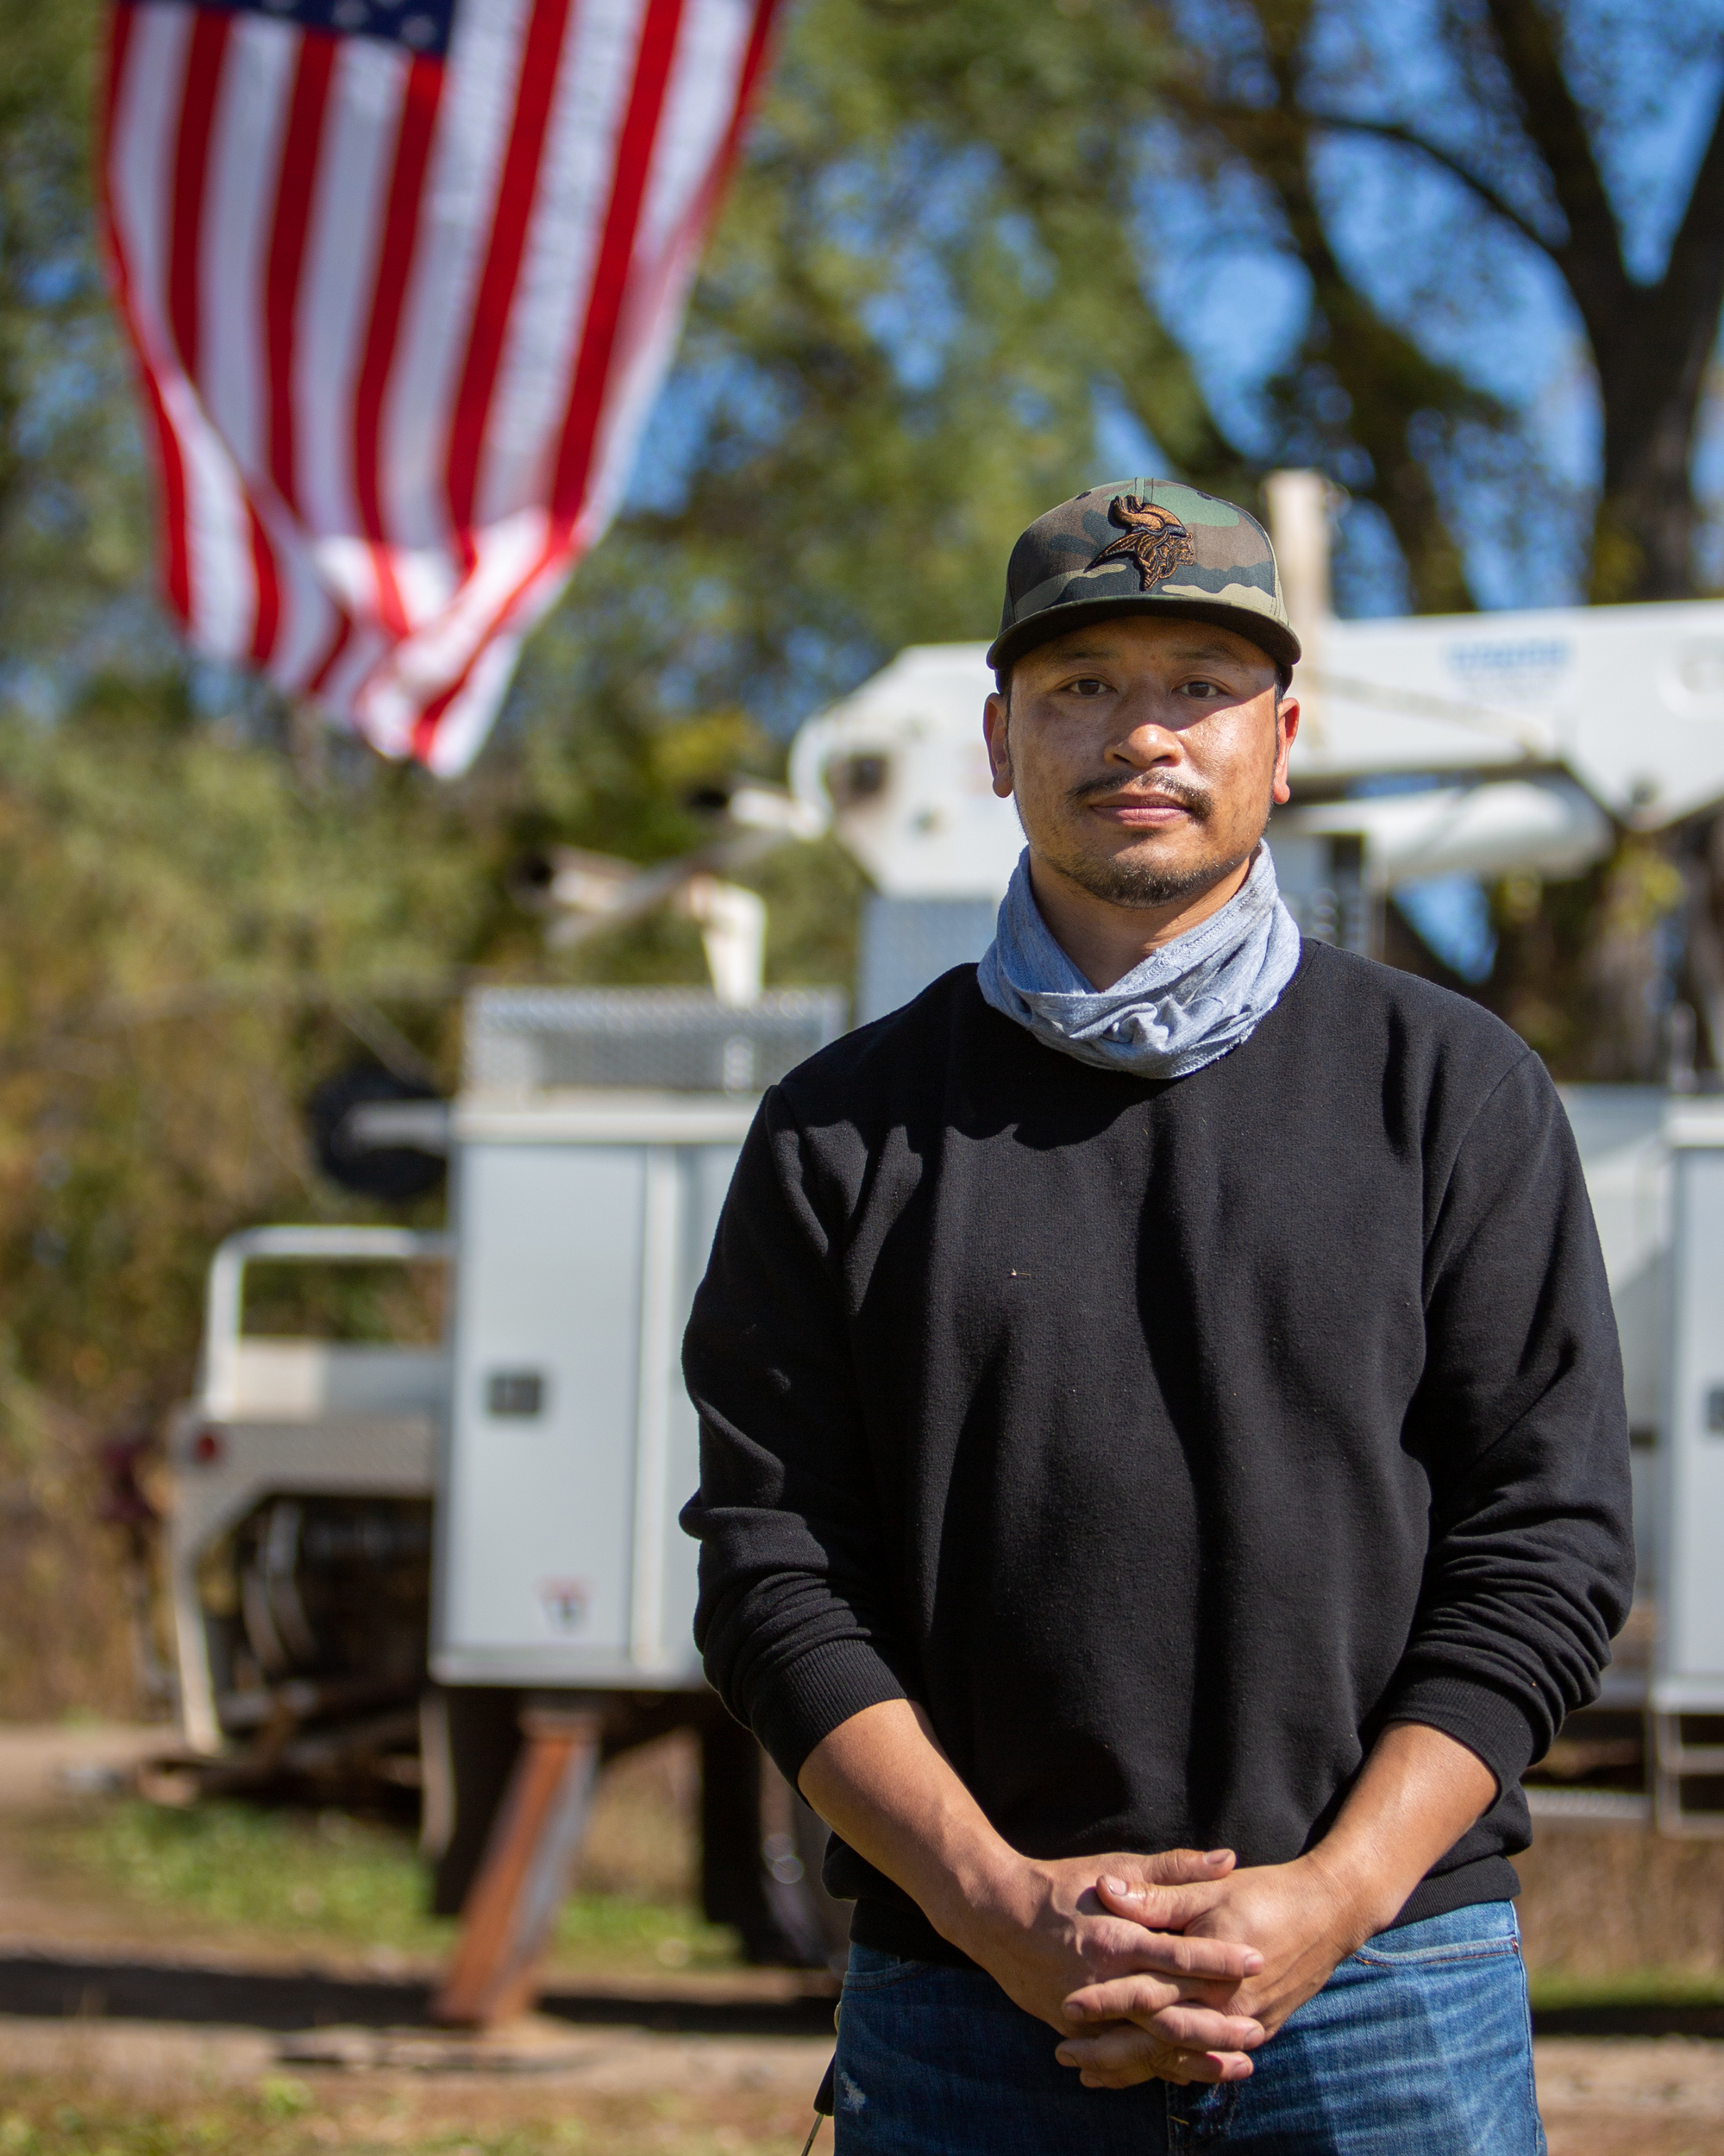 Phounsavath Phalavong, U.S. military veteran, Heavy Duty Truck Technology